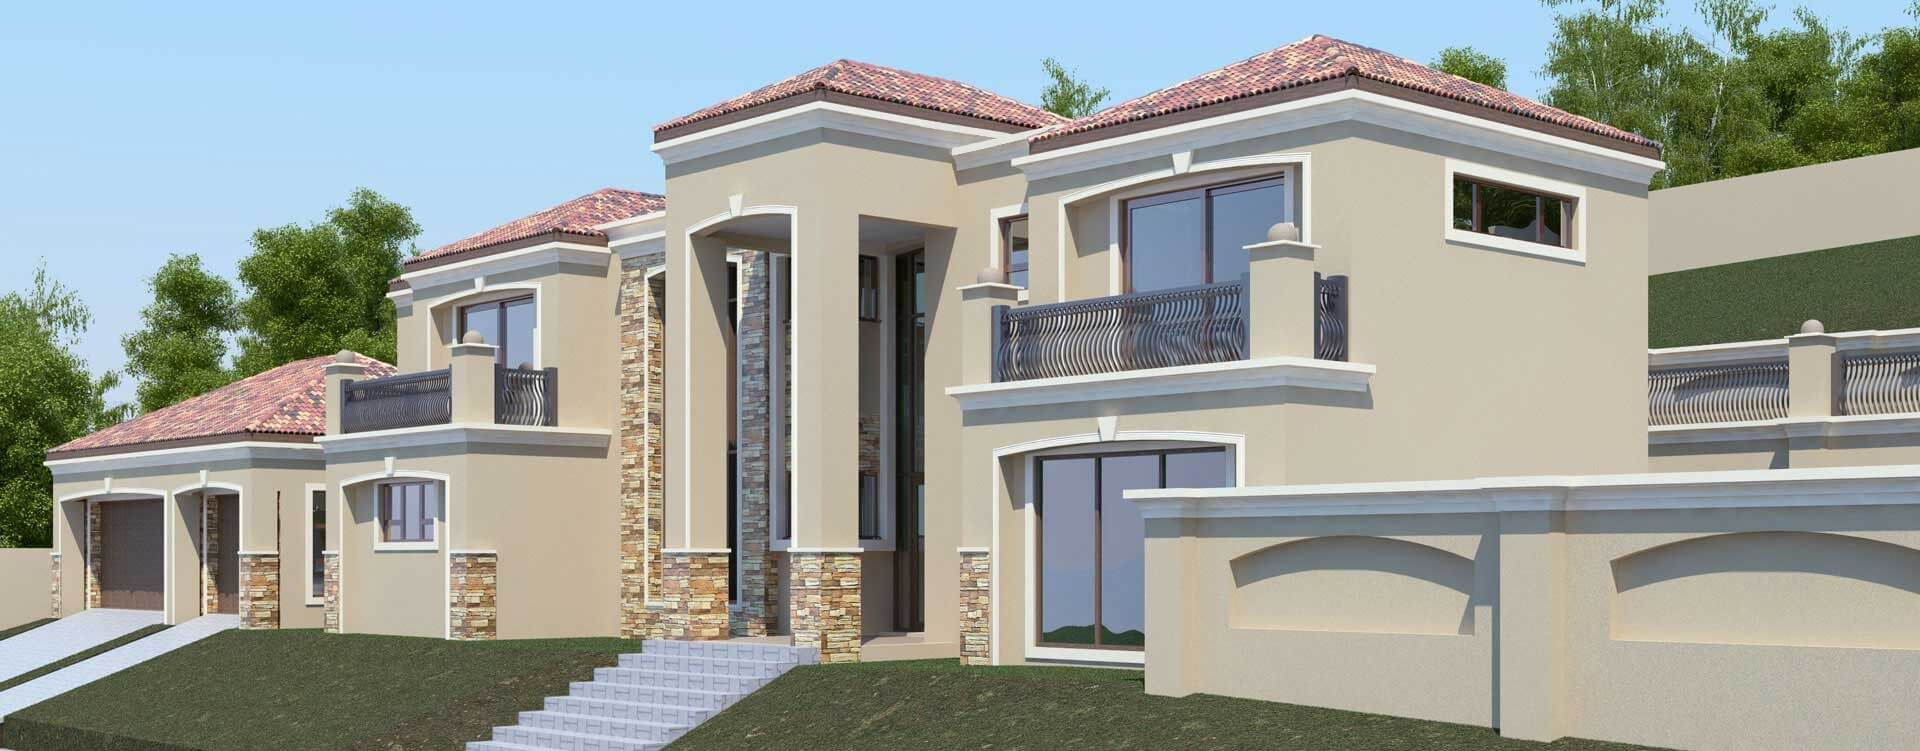 Nethouseplans affordable house plans for Modern south african home designs